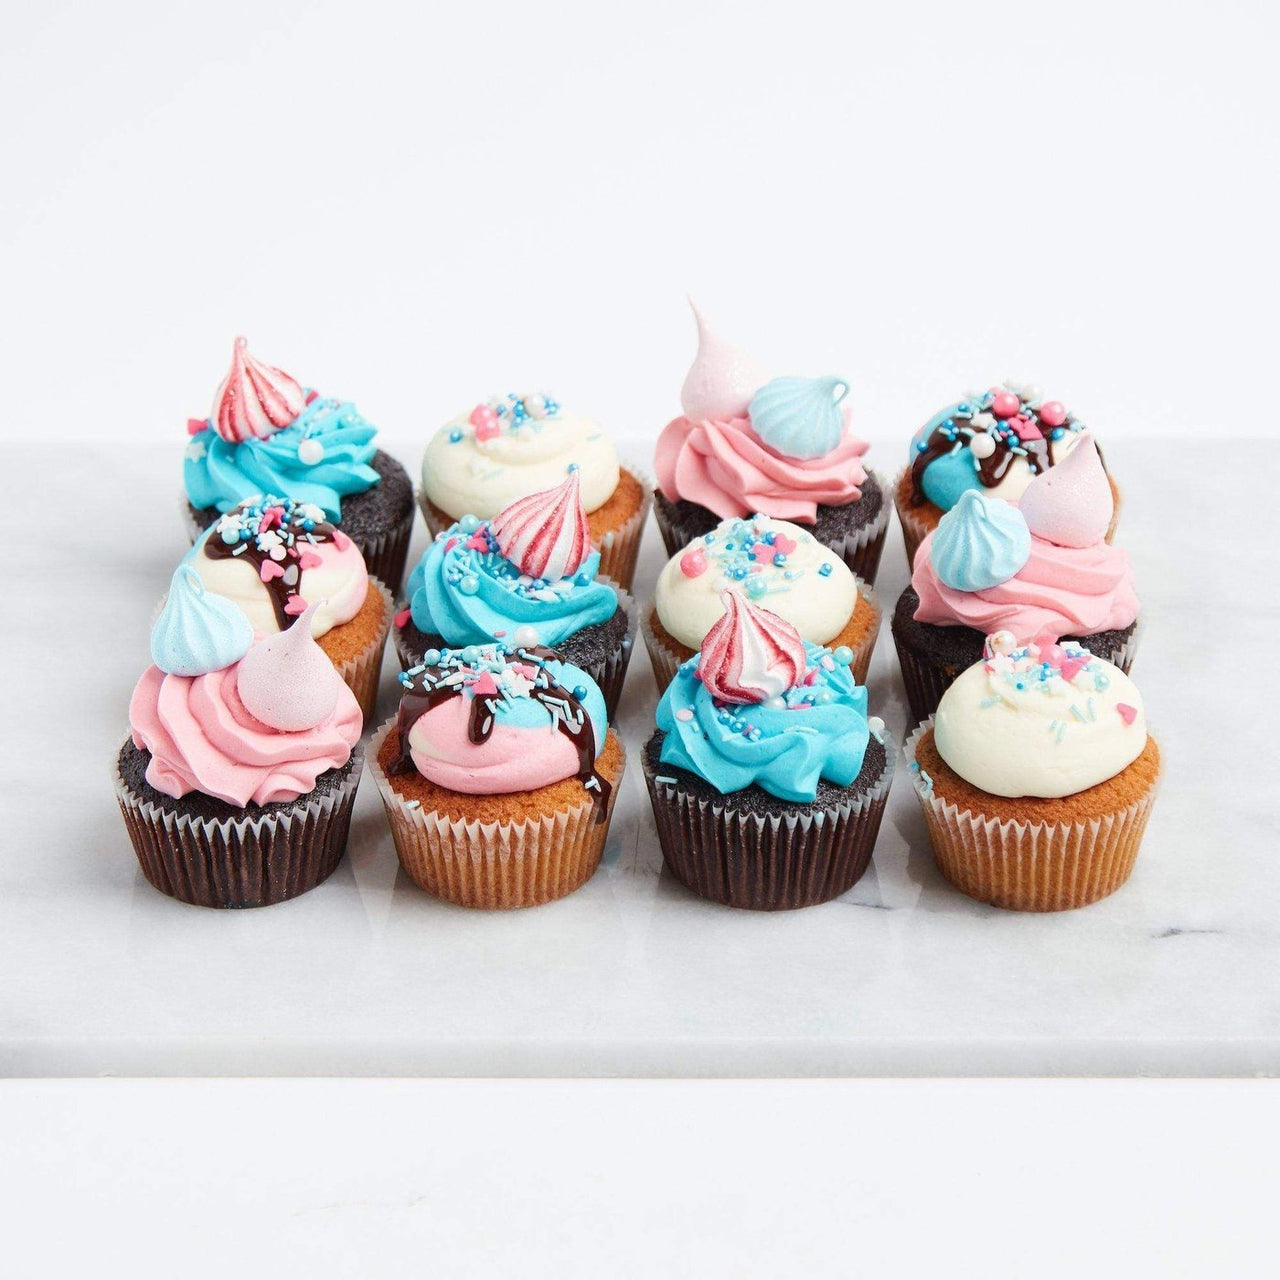 Space Unicorn Cupcakes by Crumbs & Doilies